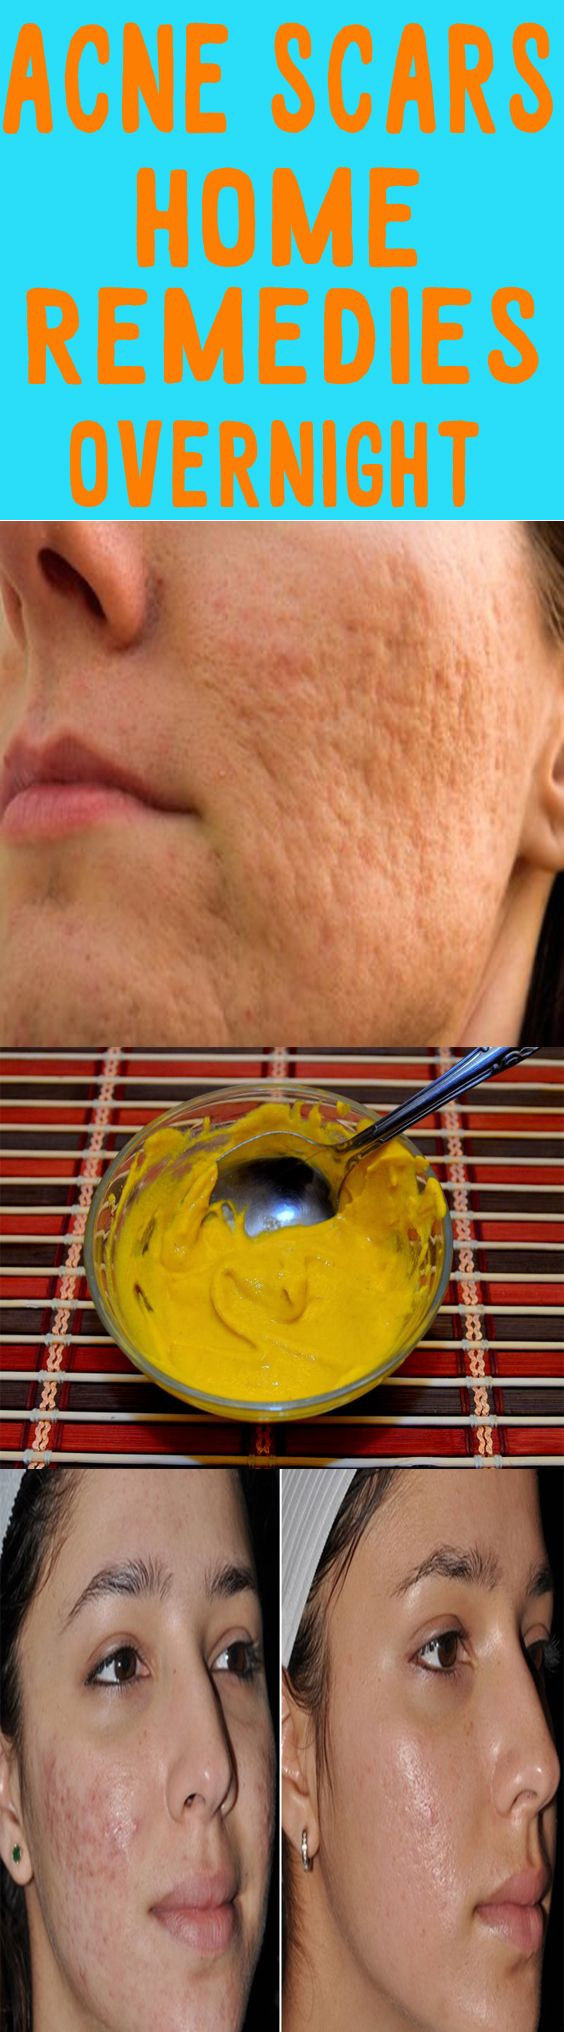 Home remedies for pimples and blackheads for oily skin - Diy blackhead remover mask